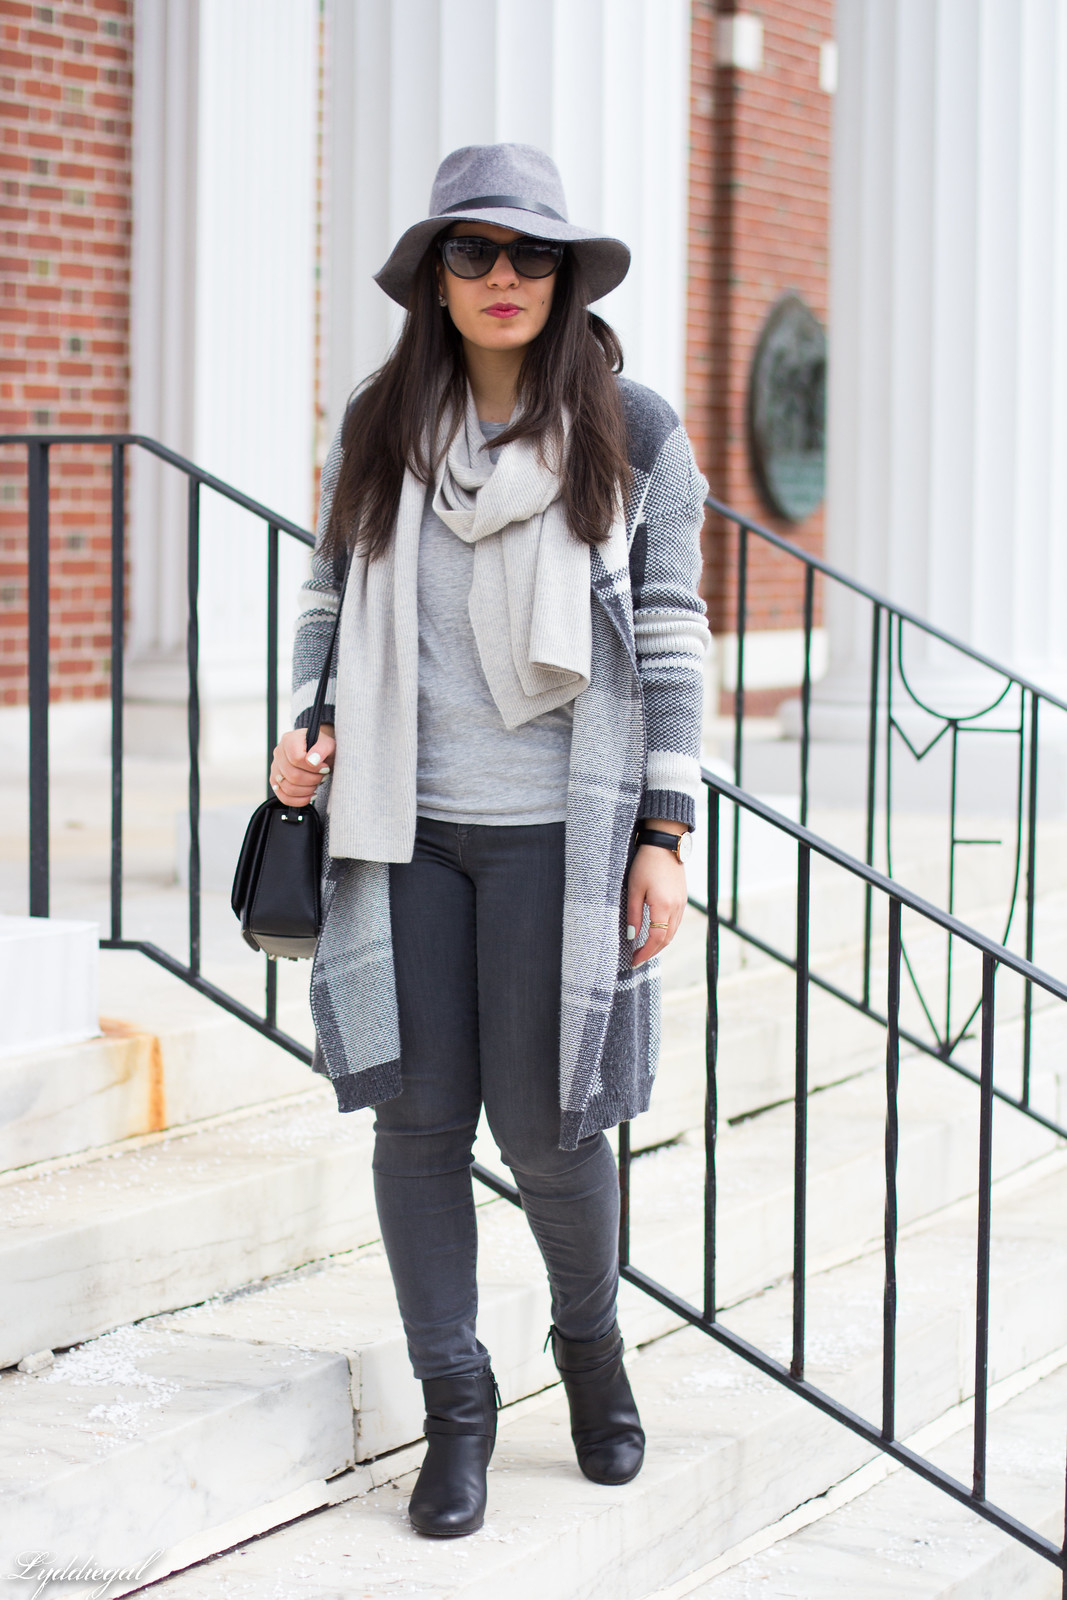 grey plaid cardigan, cashmere scarf, wool hat, grey jeans-3.jpg